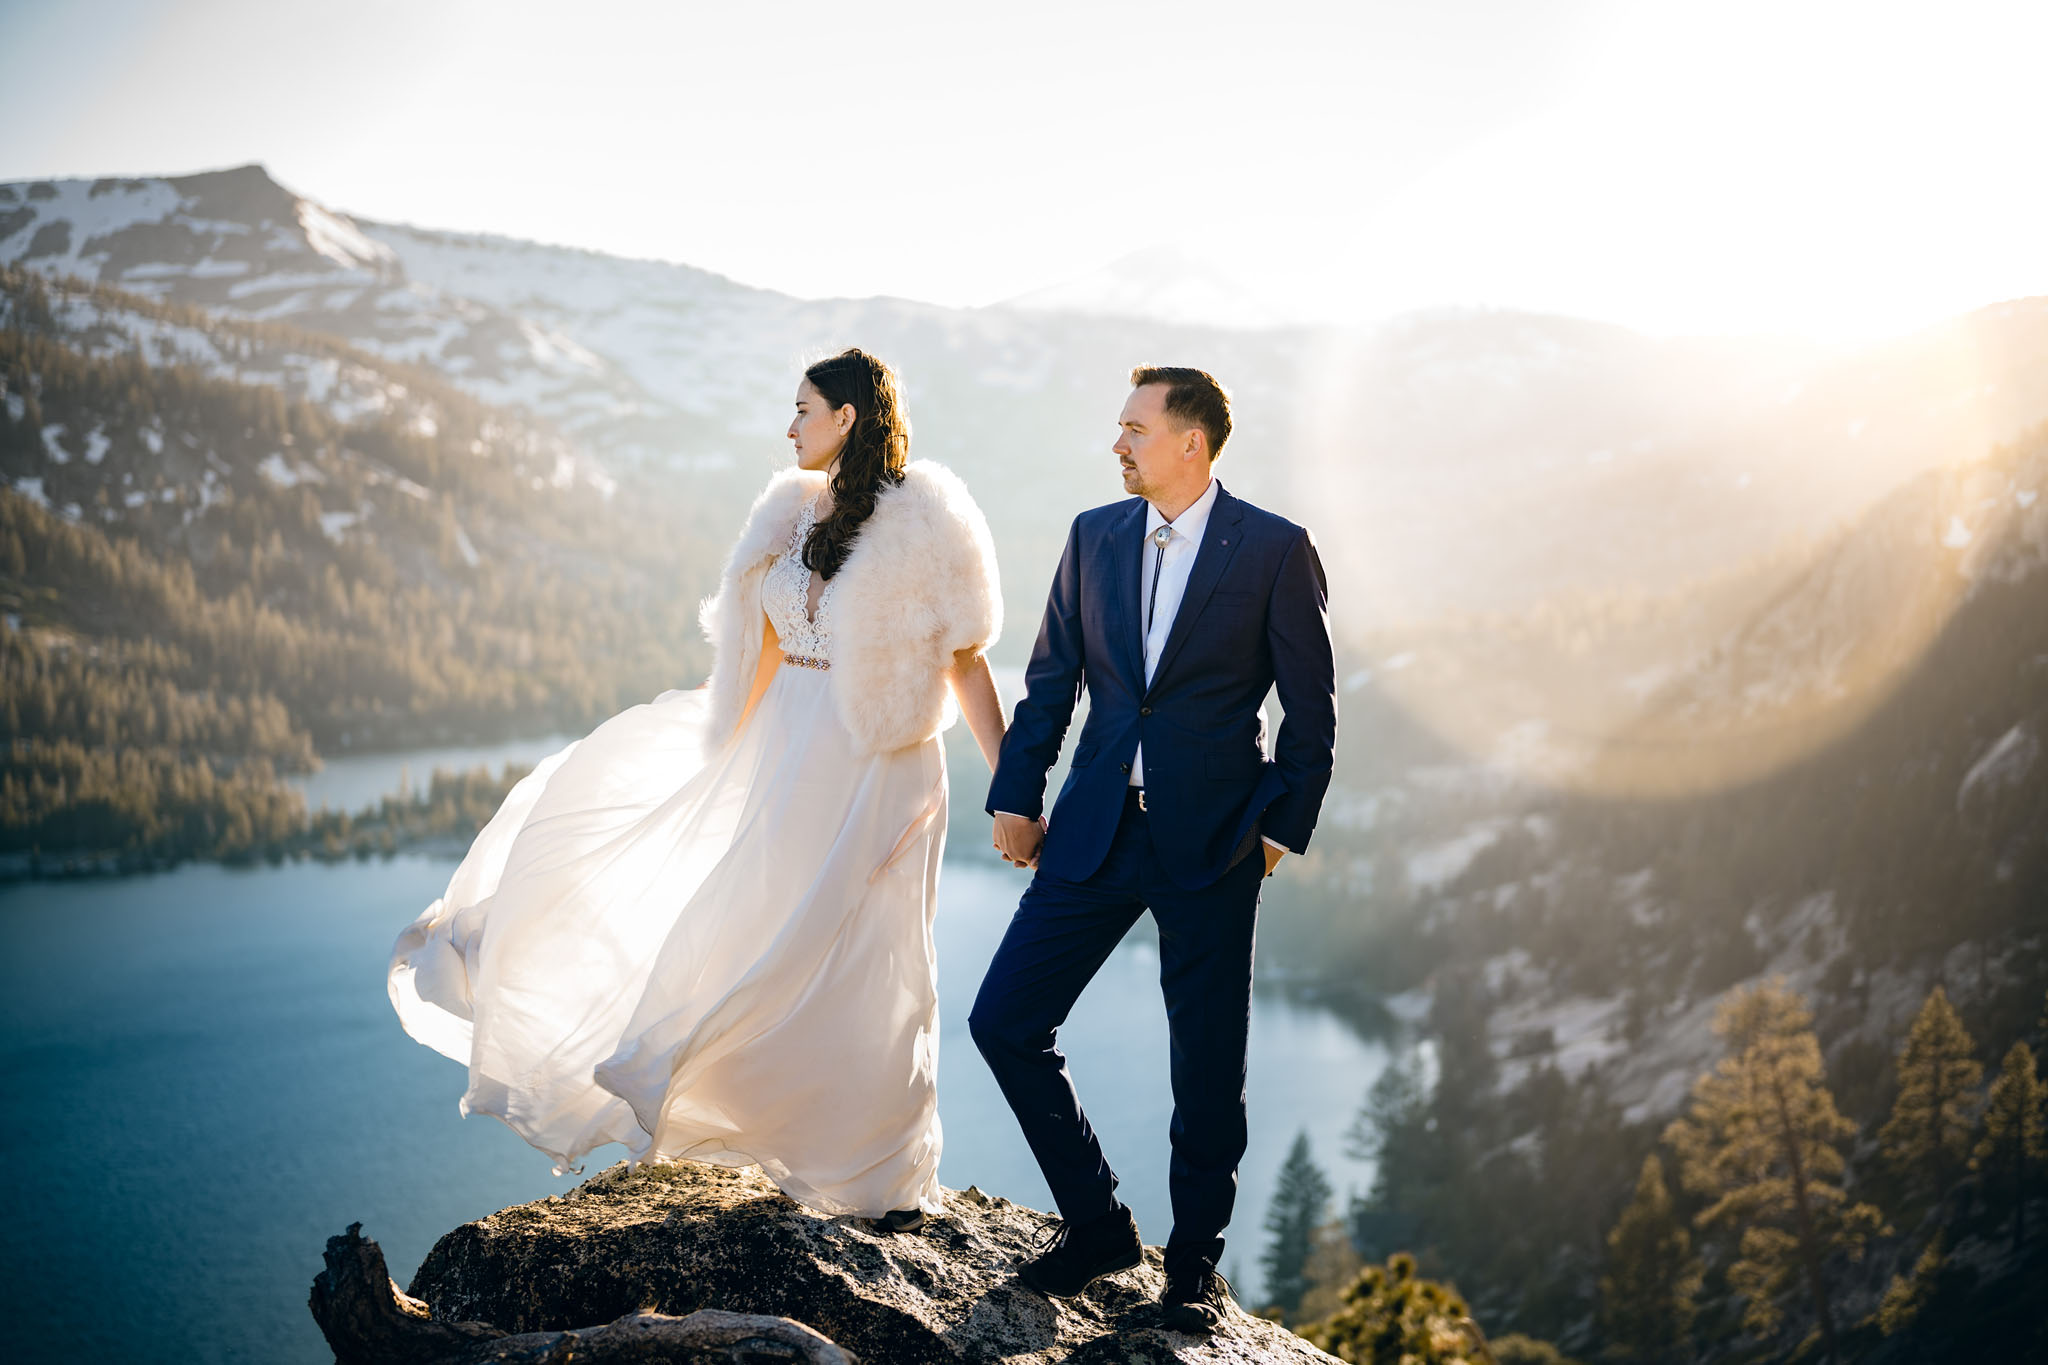 south lake tahoe wedding photographer overlooking mountains